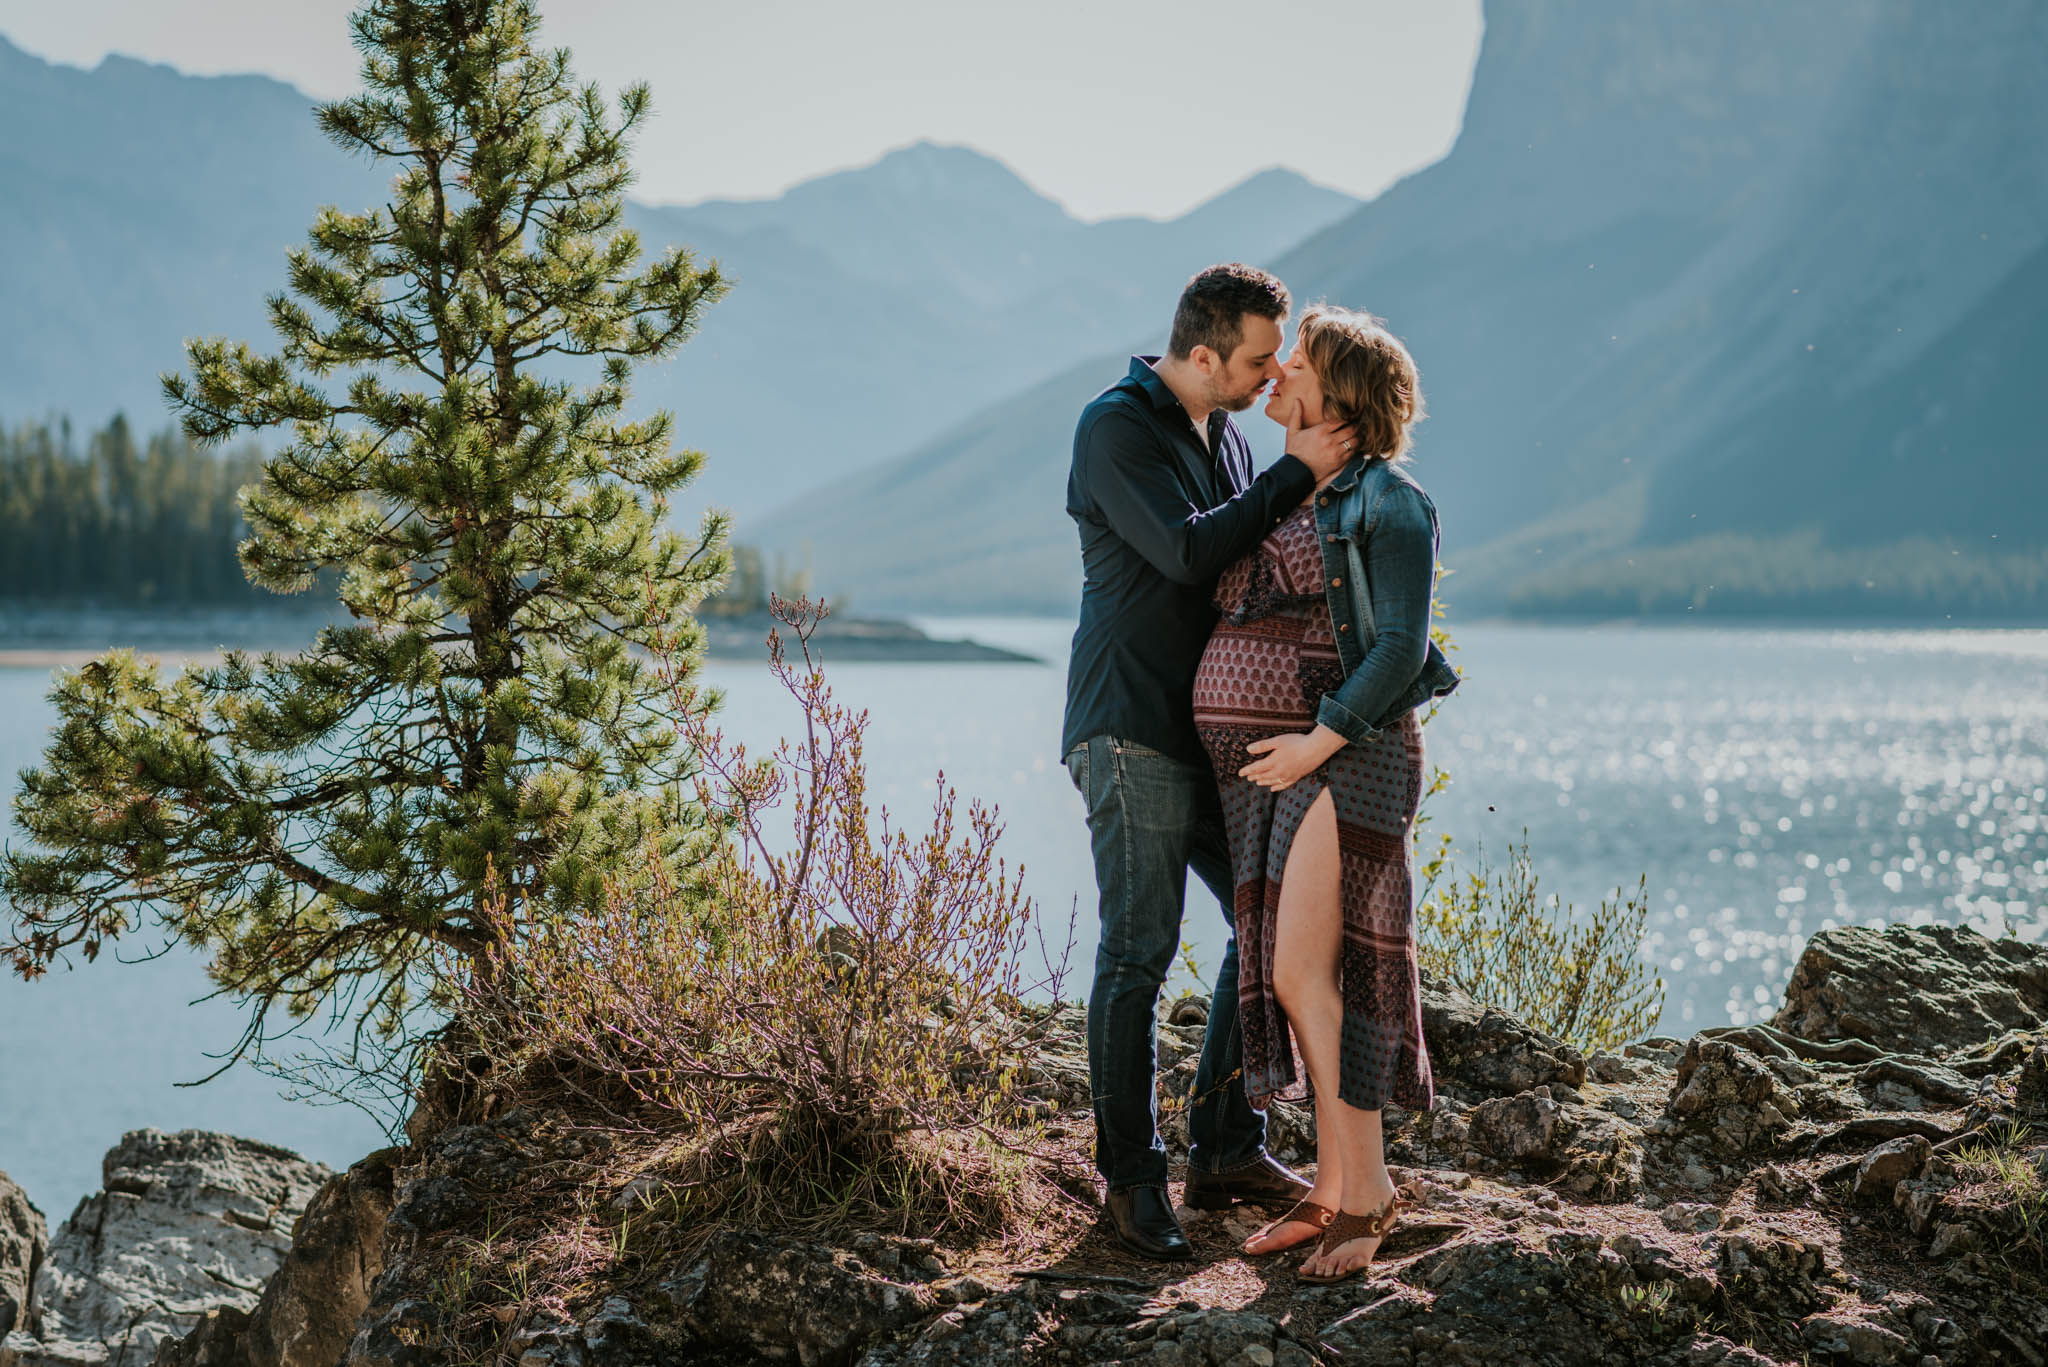 Maternity session in Banff, by Célestine Aerden Photography